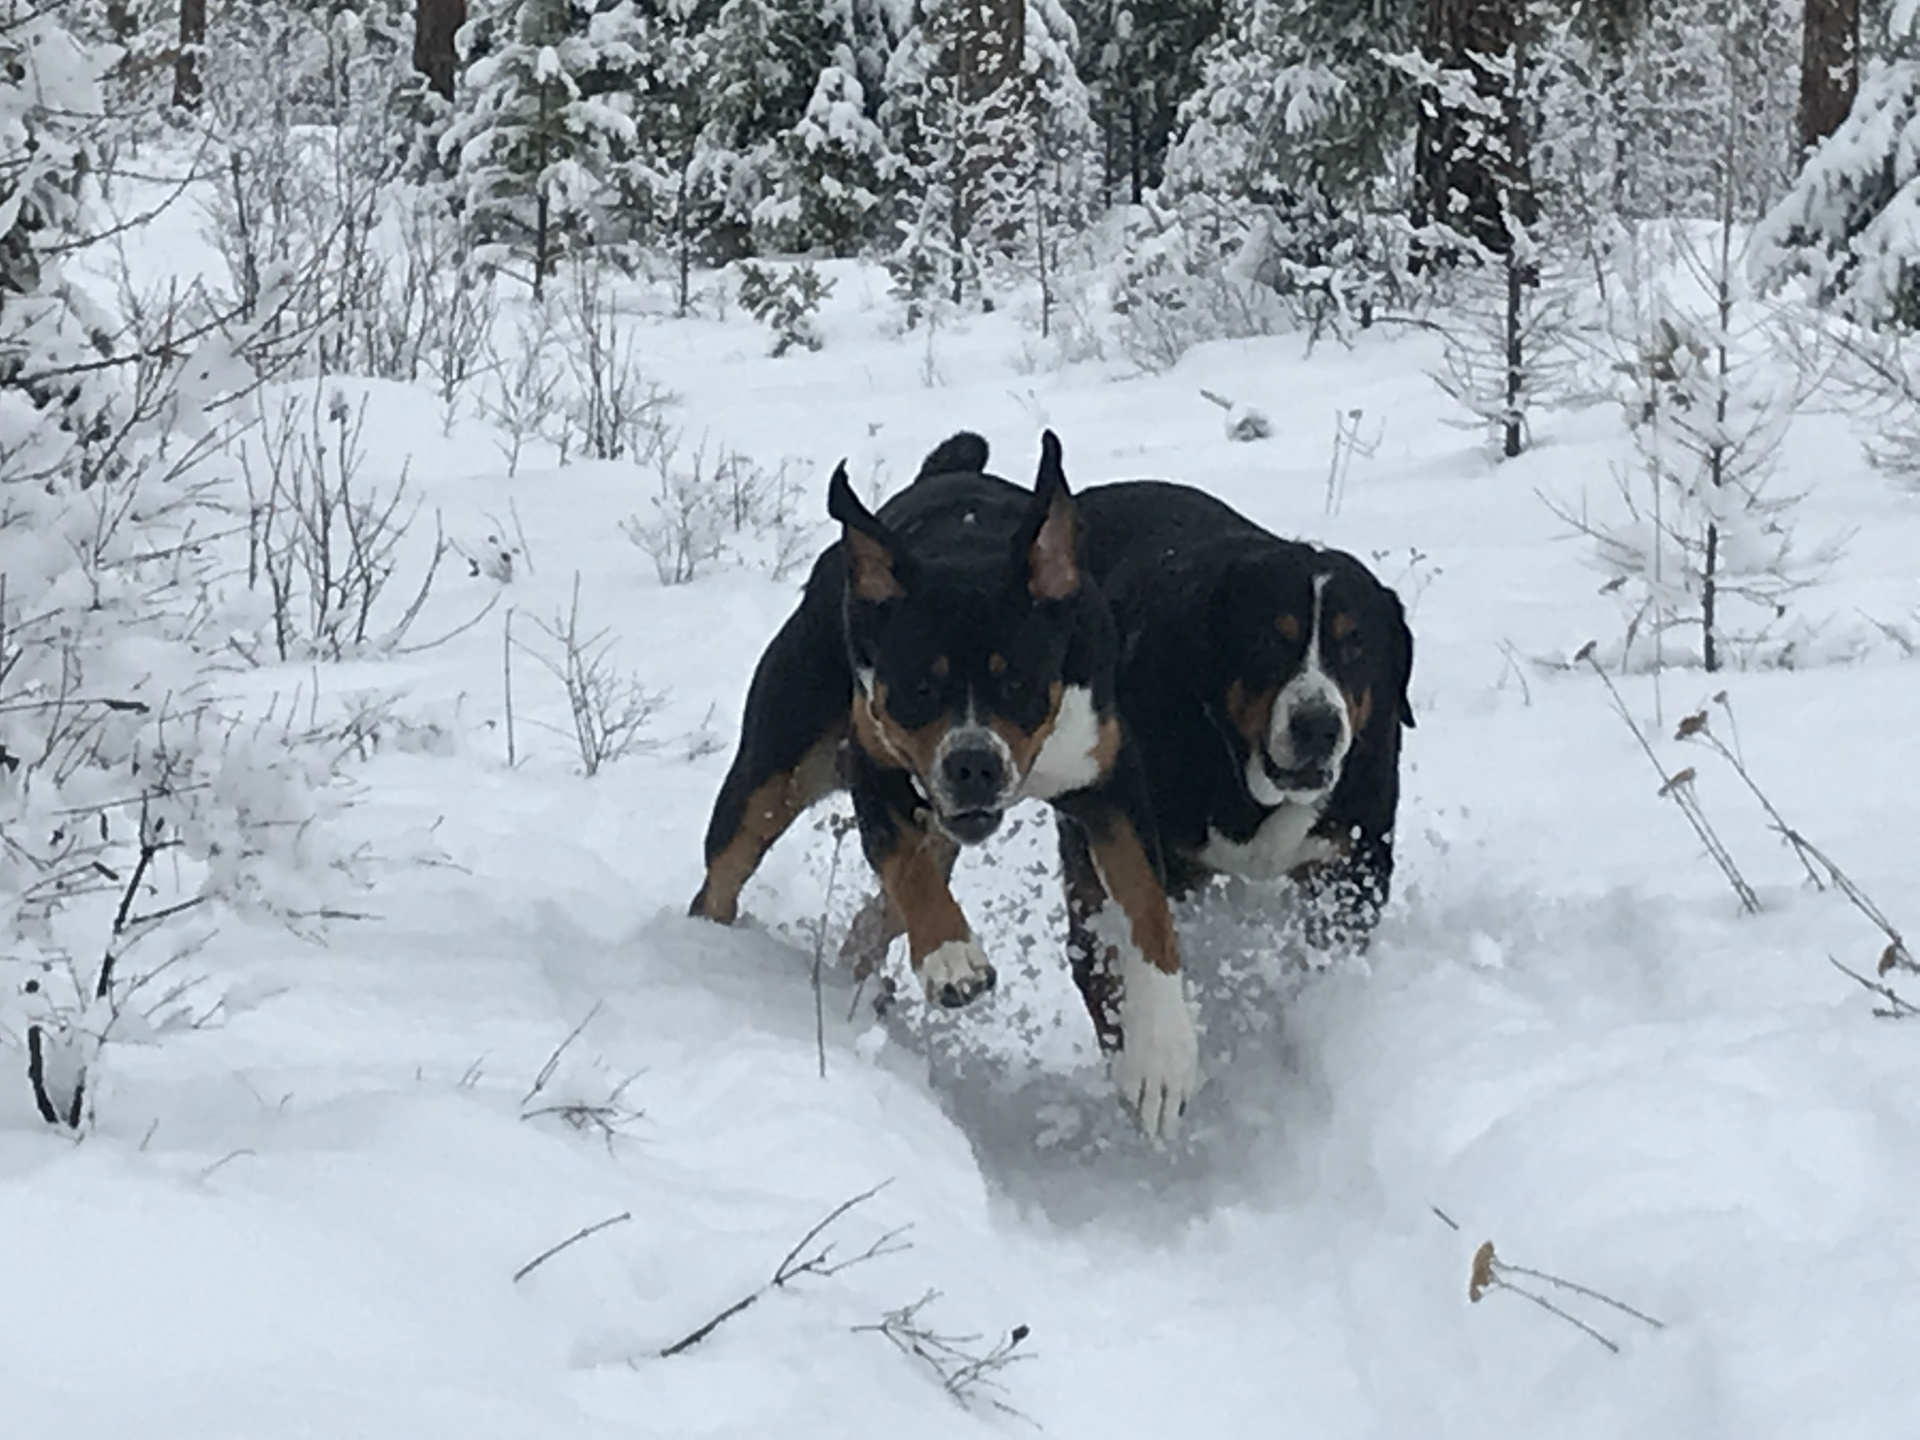 Happy Tails and Happy Trails